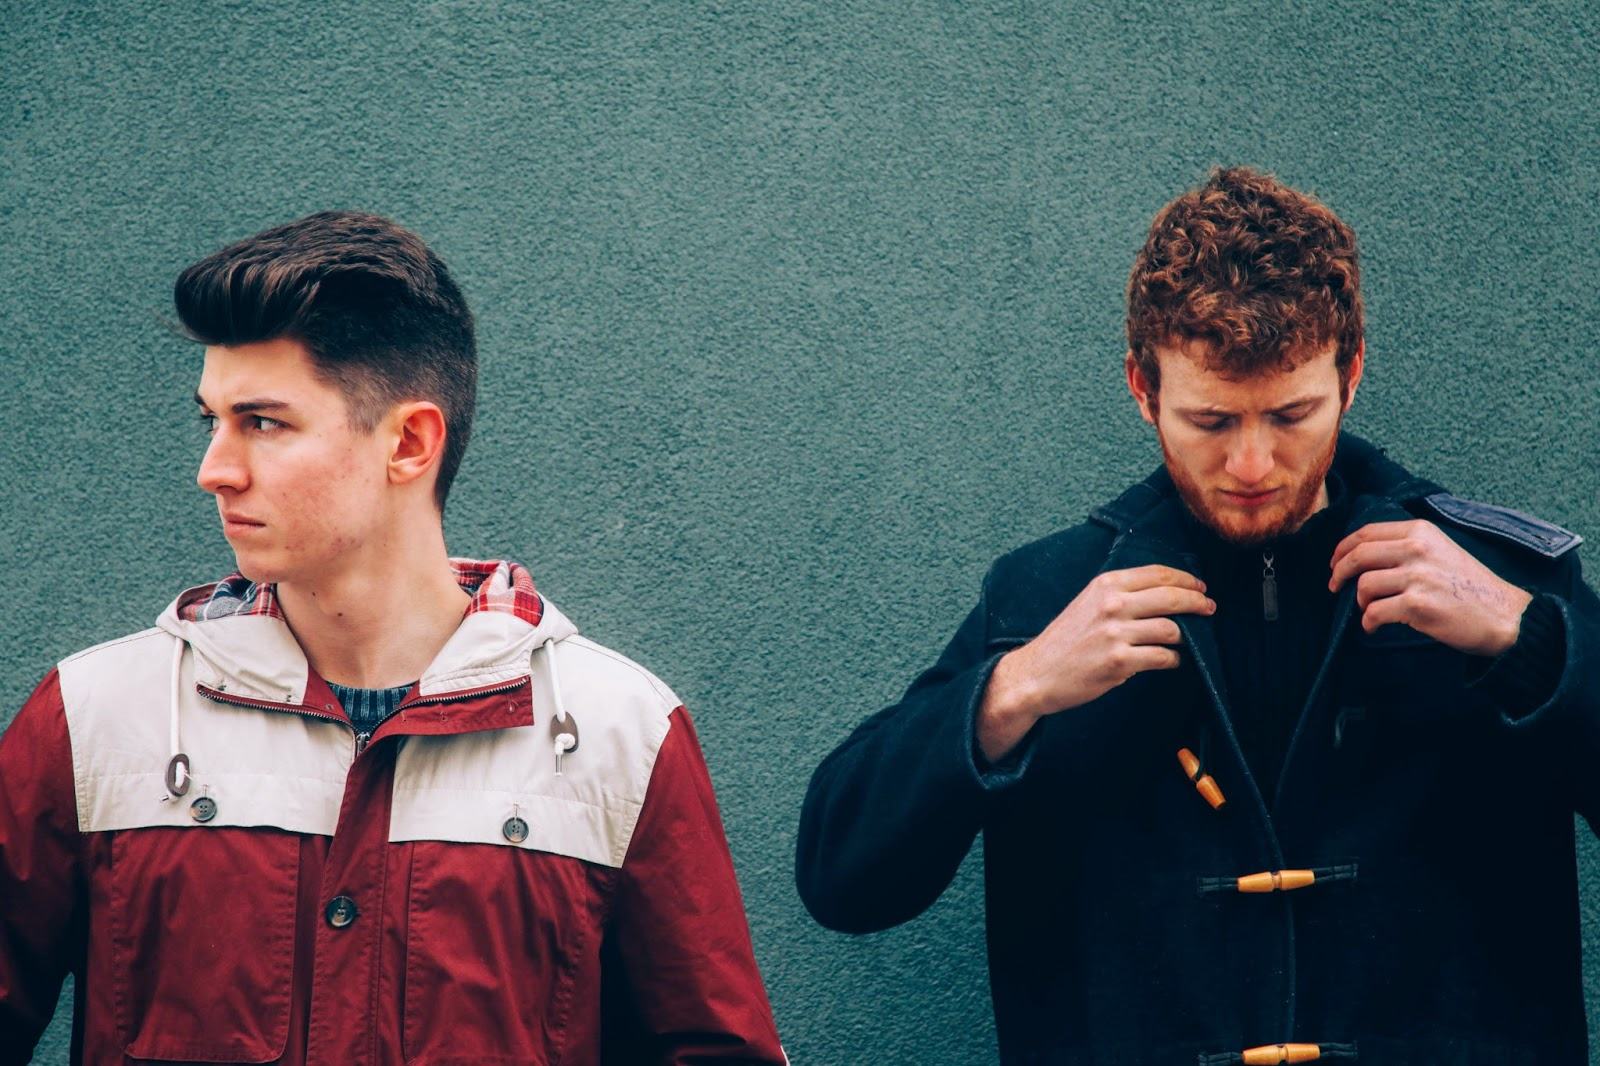 London Indie Electronica band Chalk debut single Time